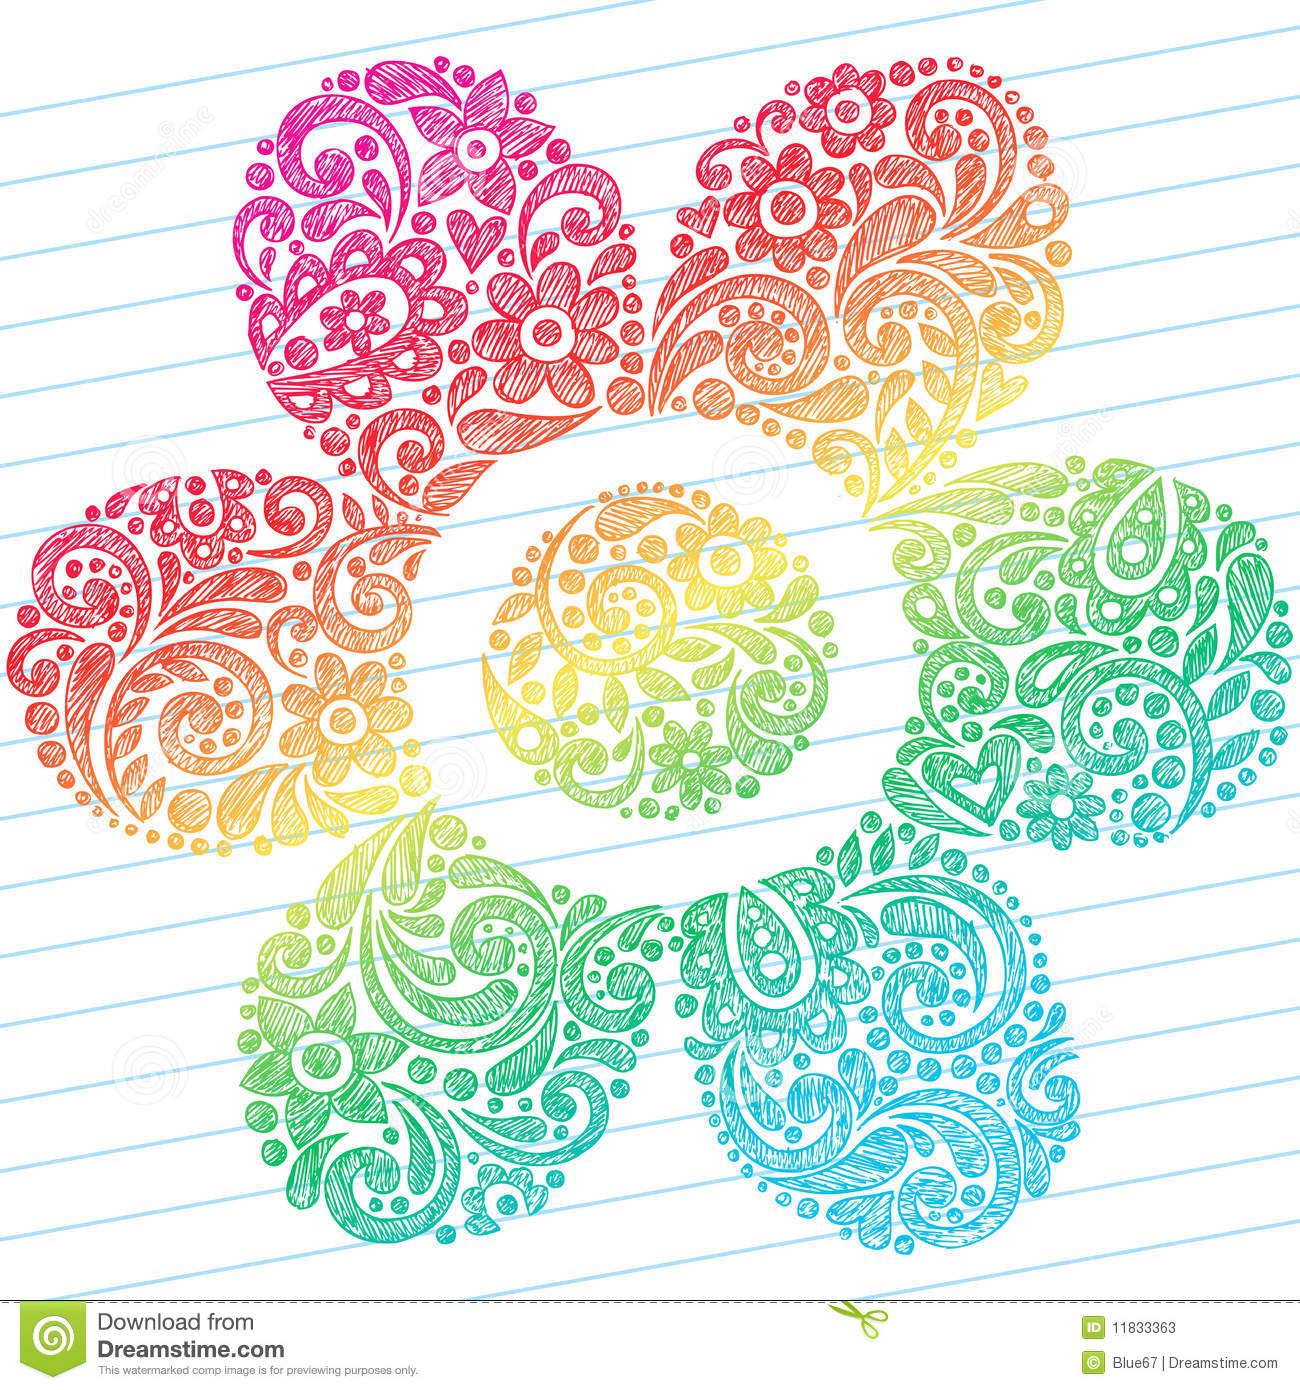 ... Notebook Doodles in a Flower Shape on Lined Notebook Paper Background